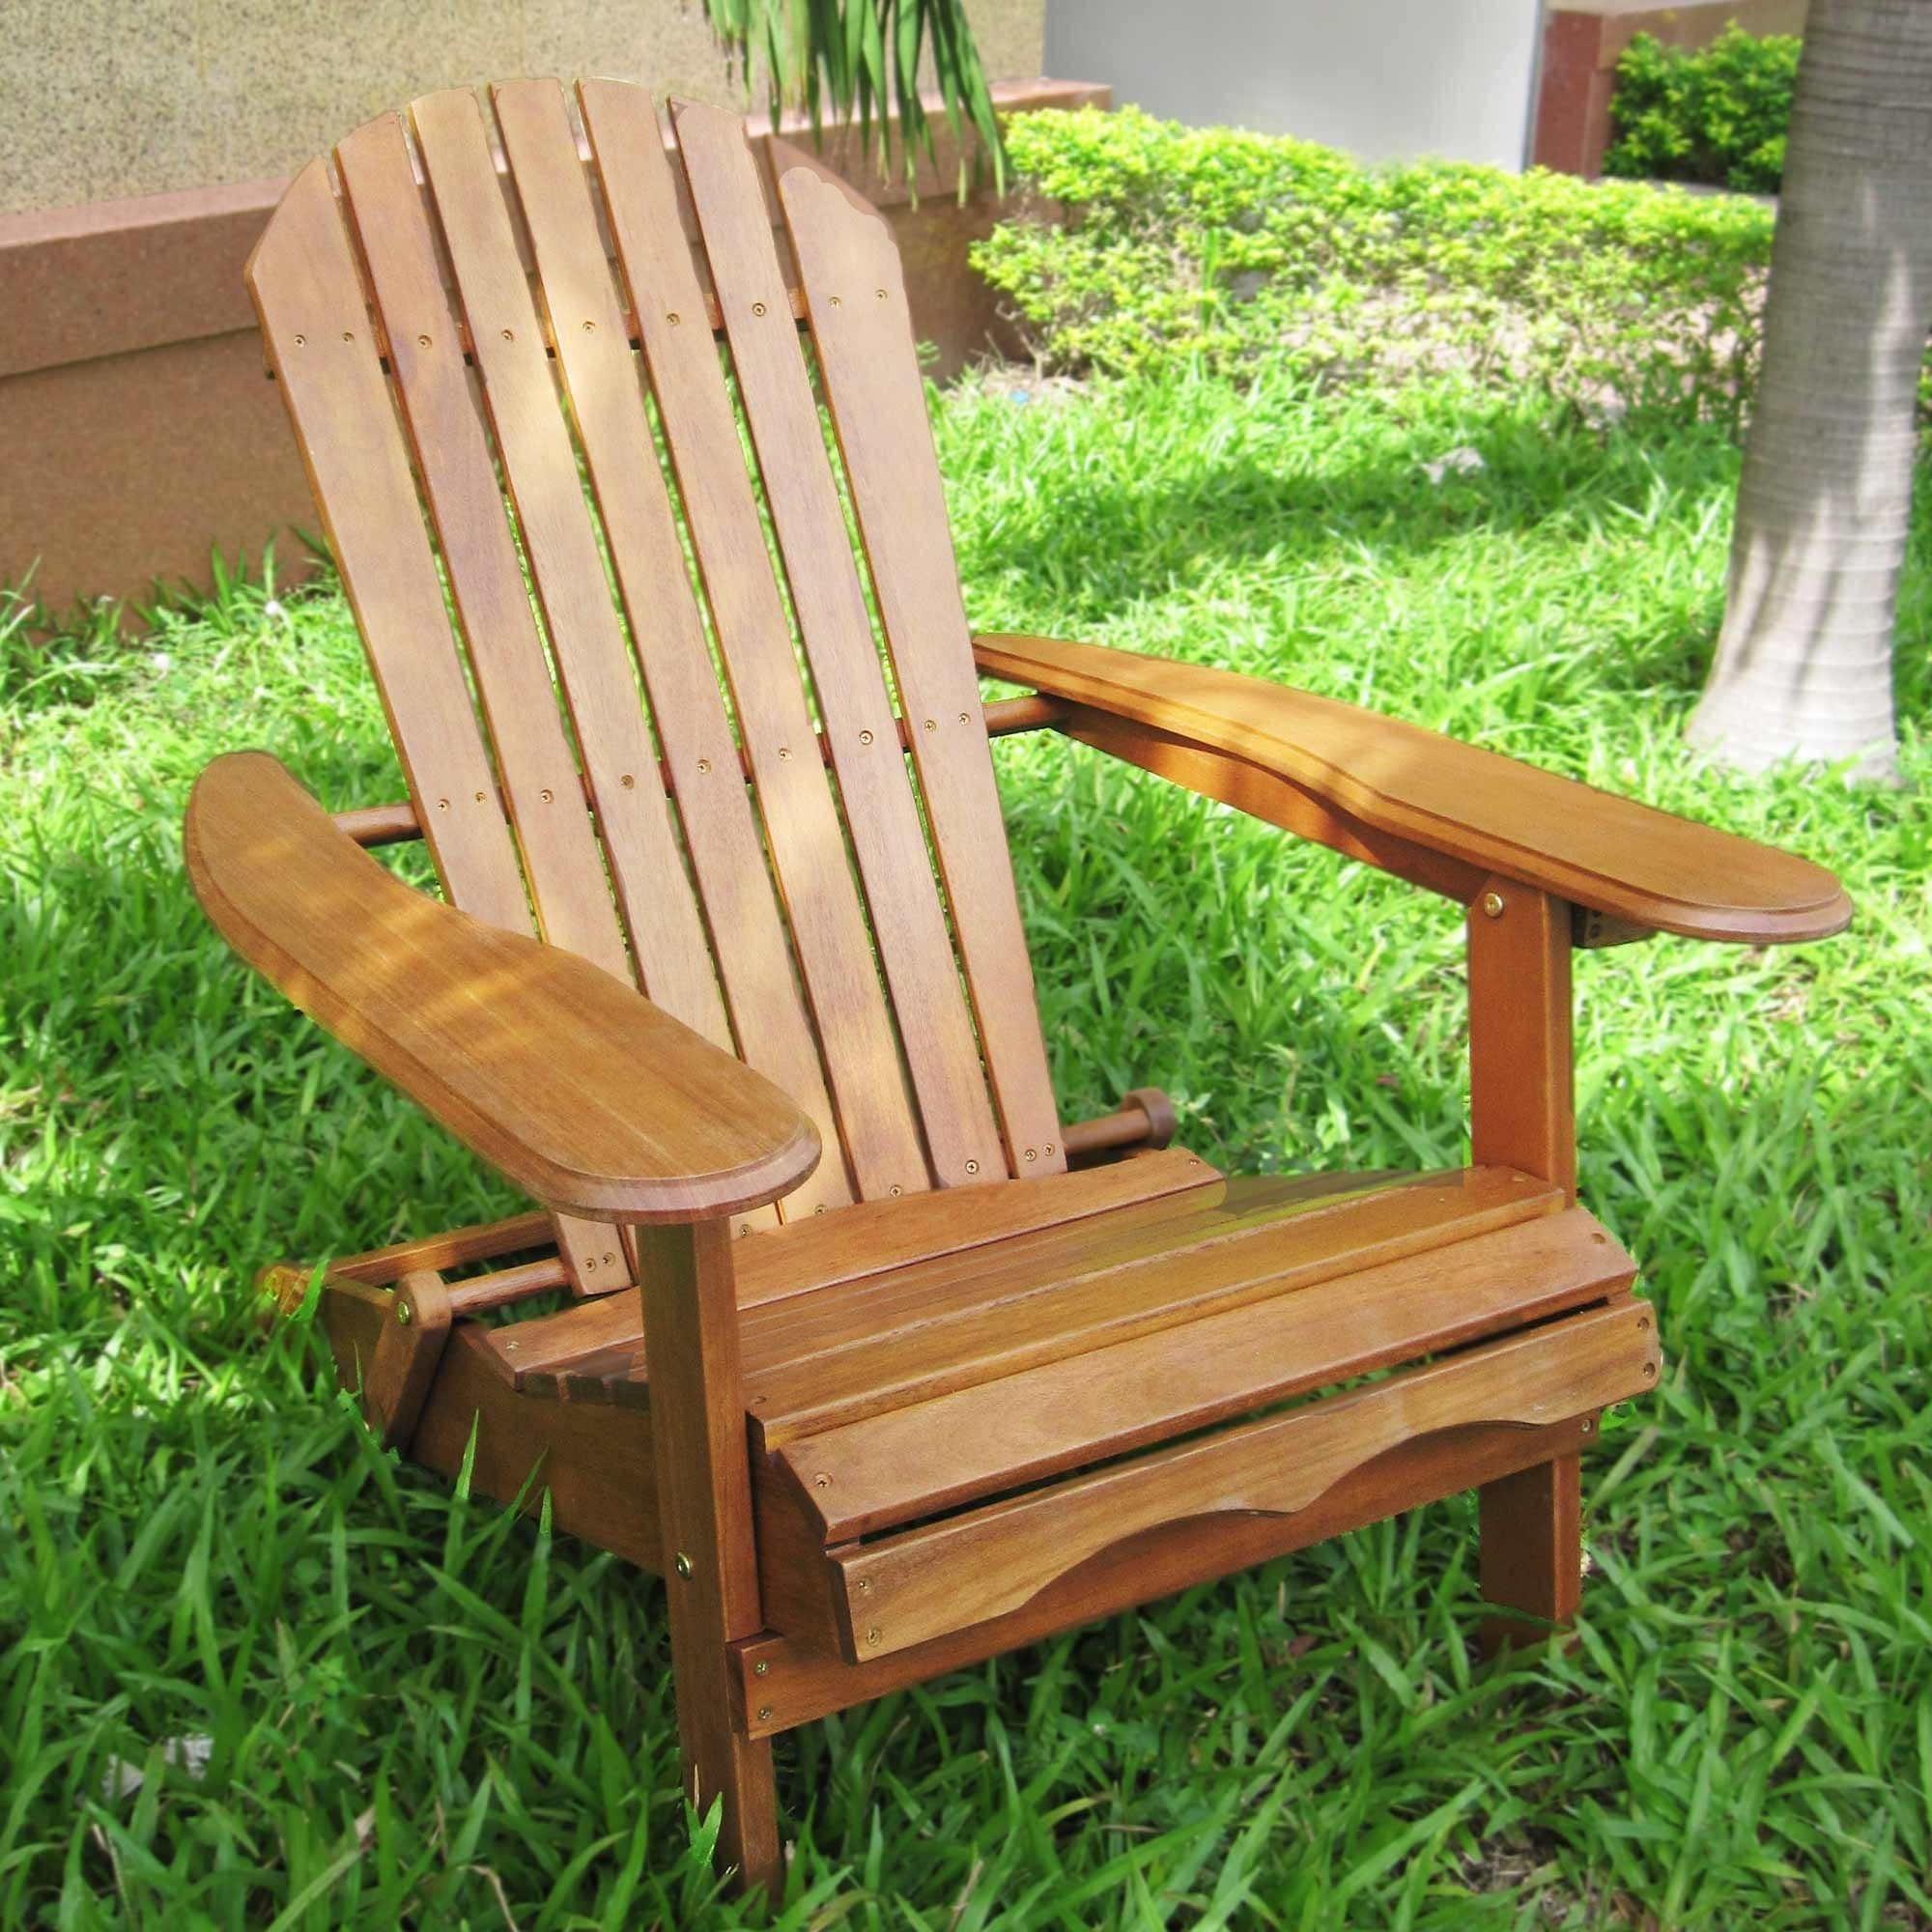 merry garden adirondack chair antique high chairs eucalyptus stained by gardens for the